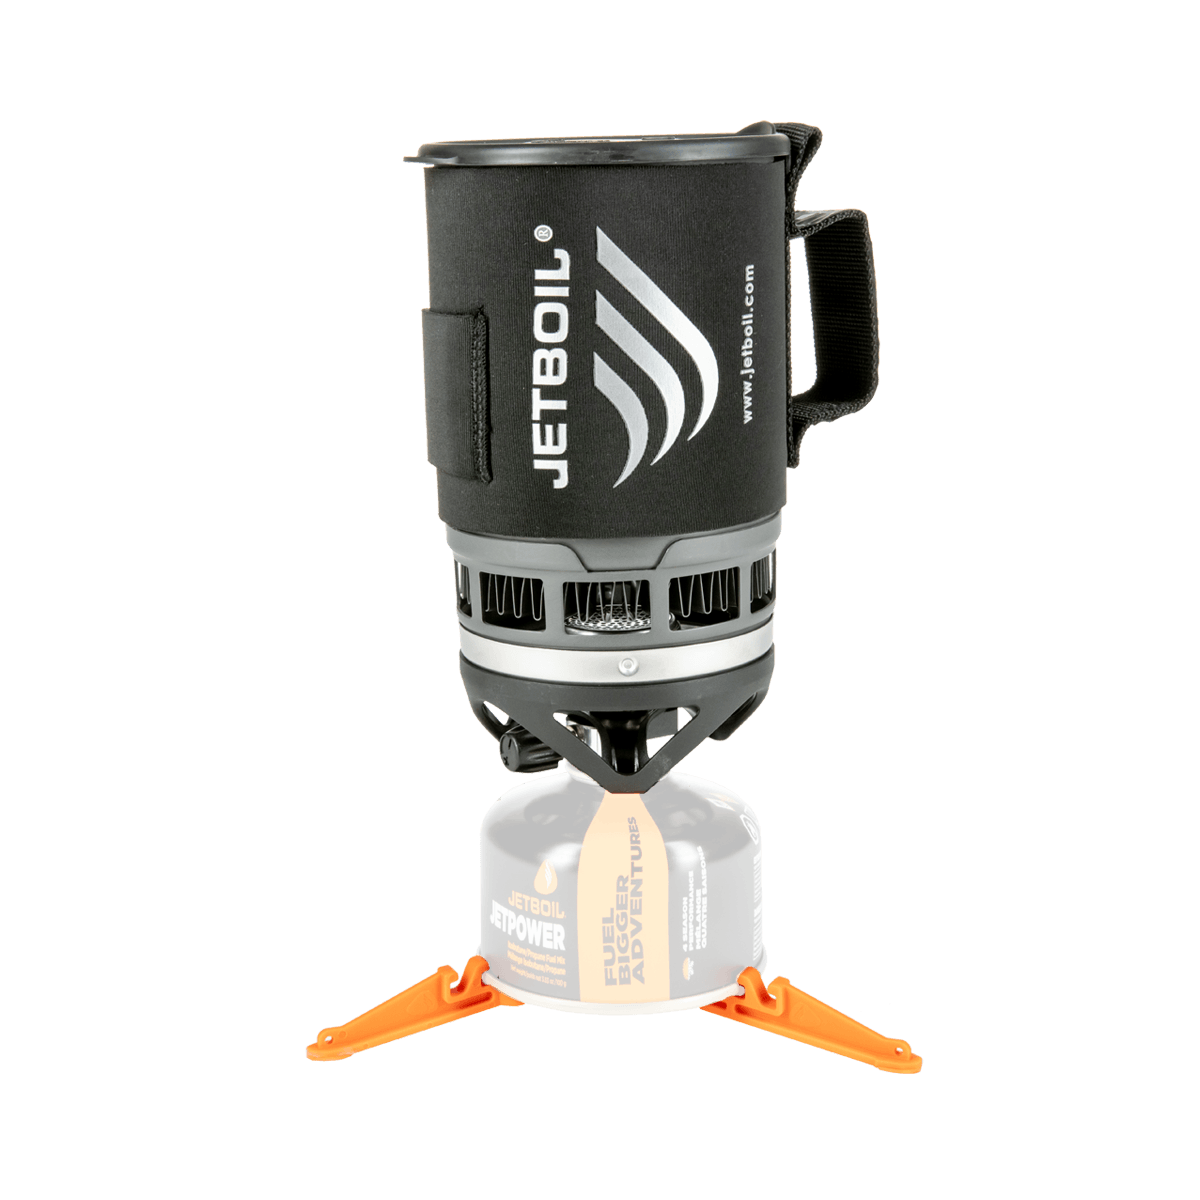 JETBOIL (ZIP) PERSONAL COOK SYSTEM